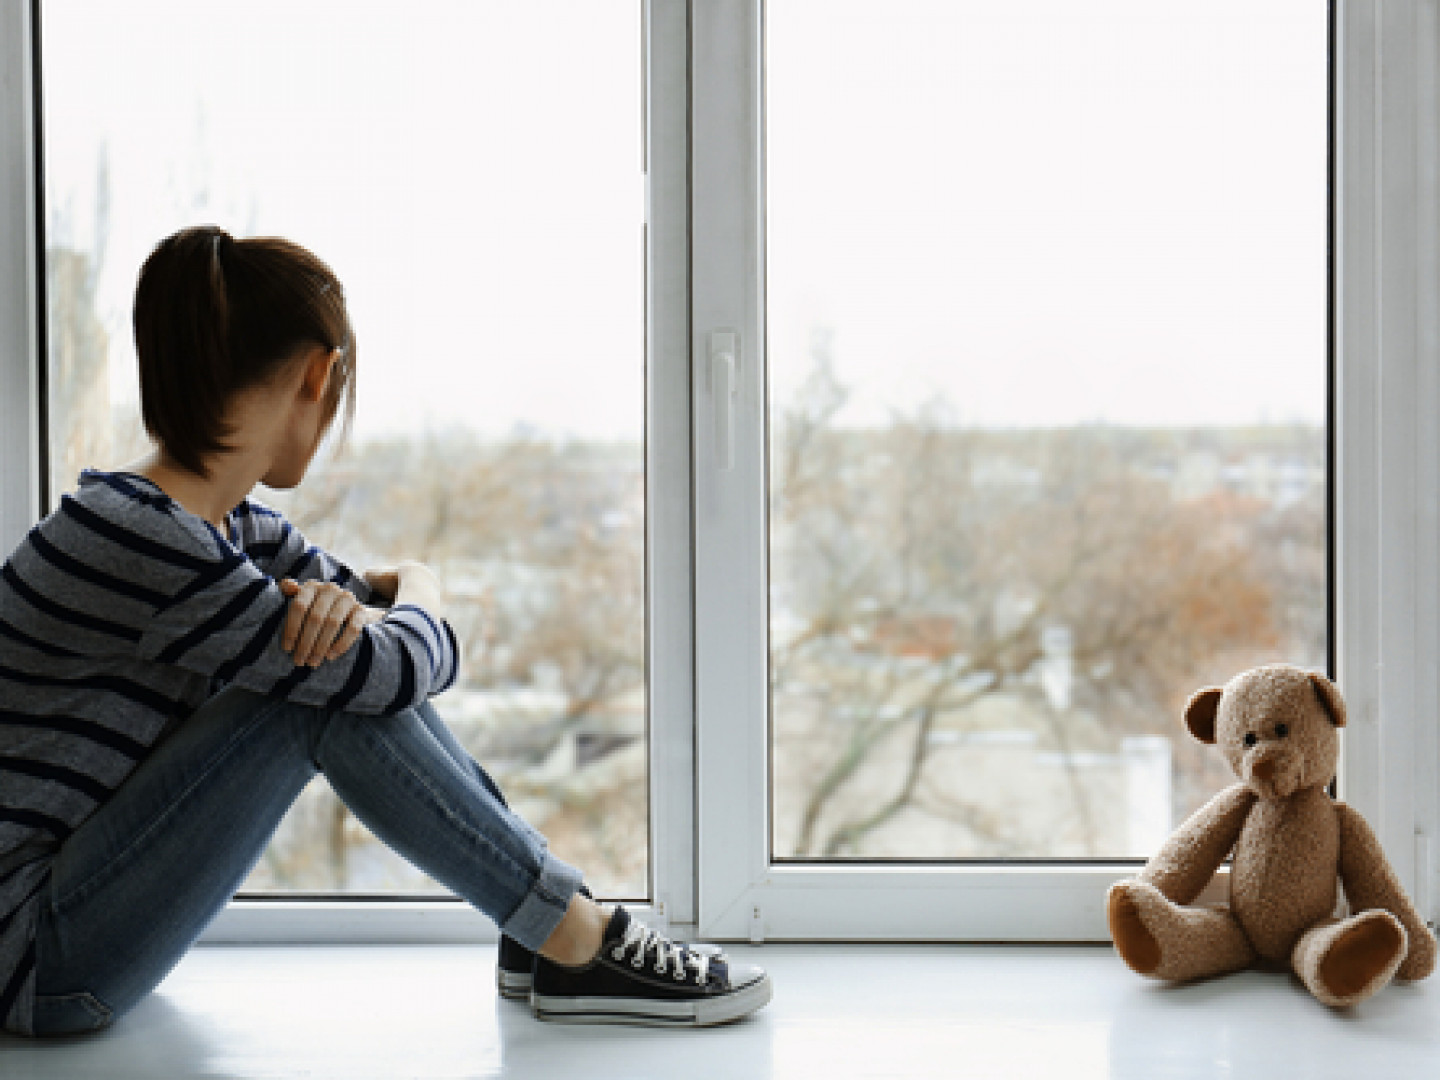 child custody attorney providence ri